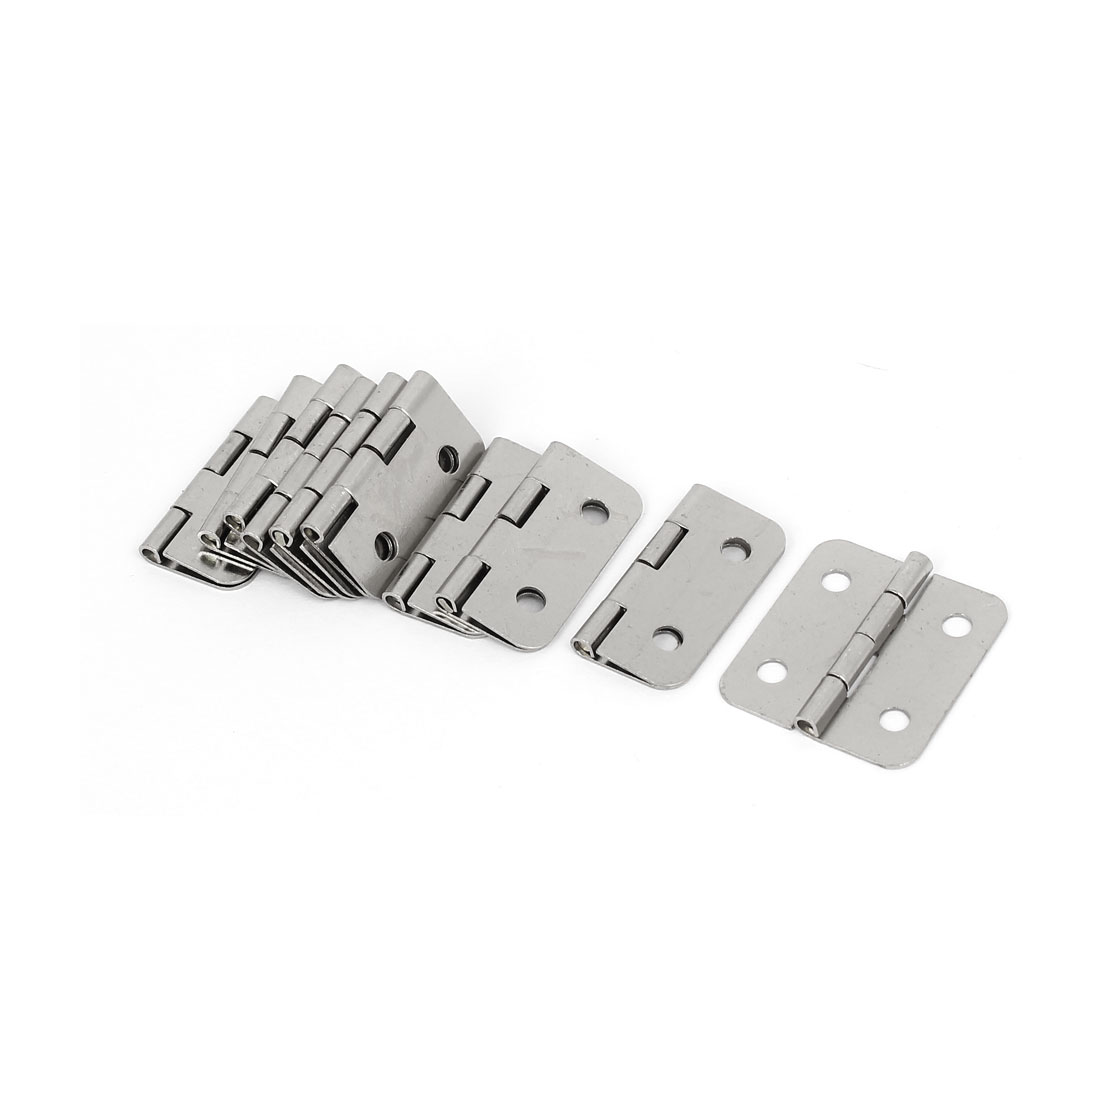 "Wooden Case Jewelry Box Drawer Metal Butt Hinges Silver Tone 1.2"" Length 10PCS"